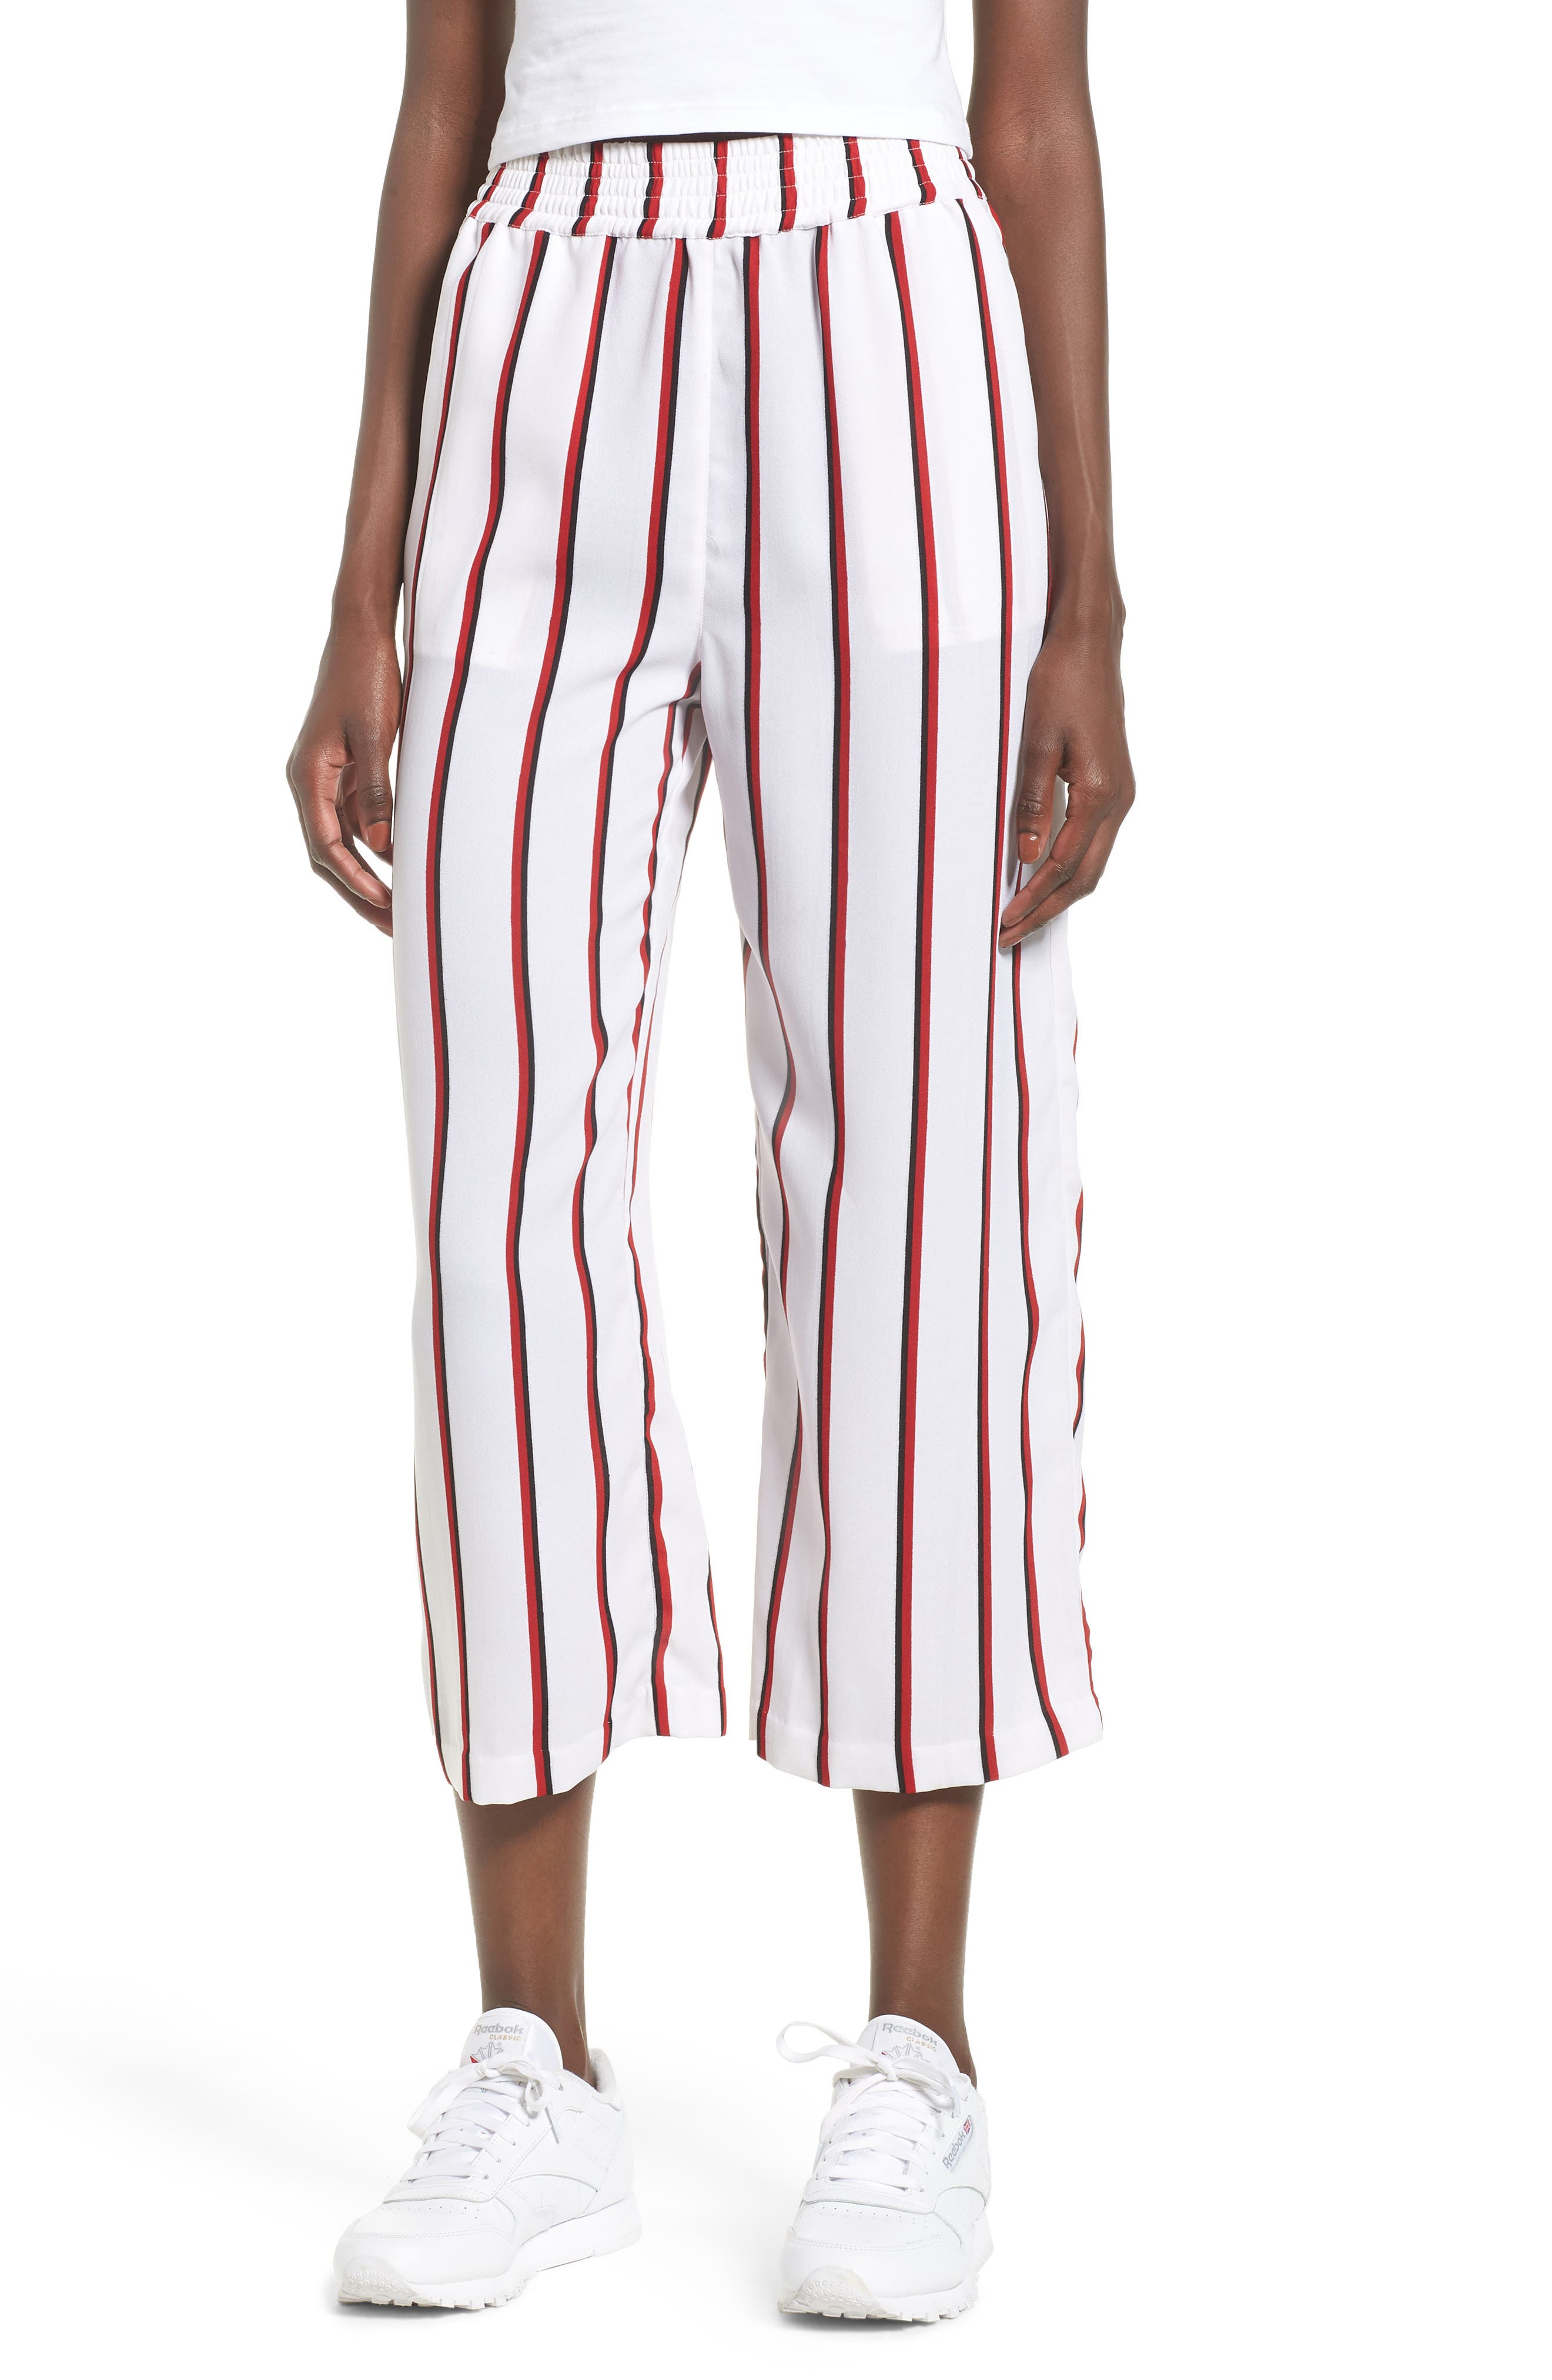 Counting Moons Stripe Culottes,                             Main thumbnail 1, color,                             Chili Red